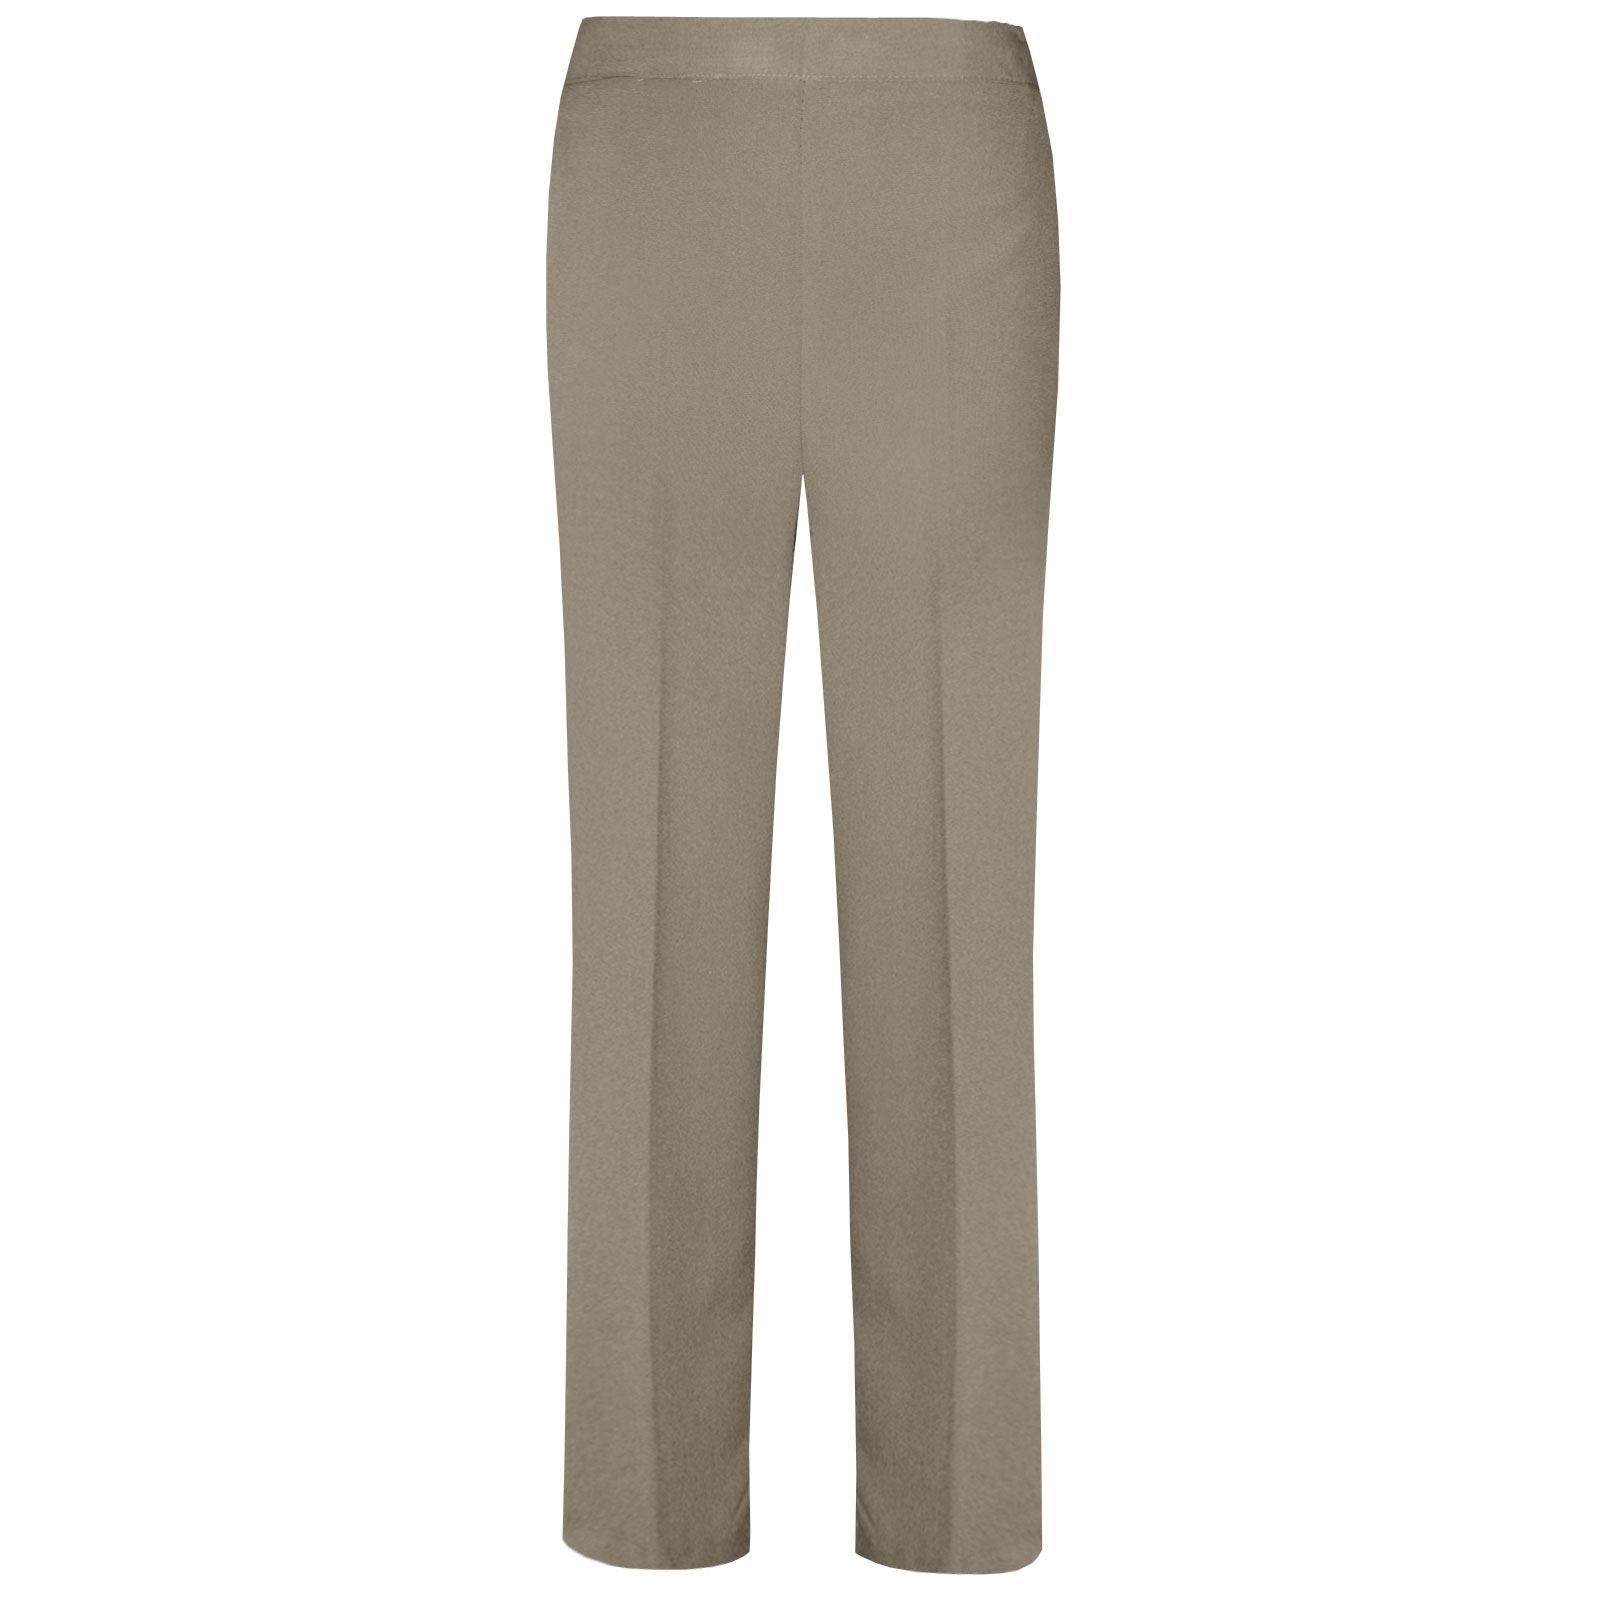 One of the great things about pallazo pants is that they allow you to bring life to your outfit with cute prints and to break the dark color bottom rule. They are really versatile and you can put them on for casual outfits and more formal occasions regarding how you pair them and accessorize.